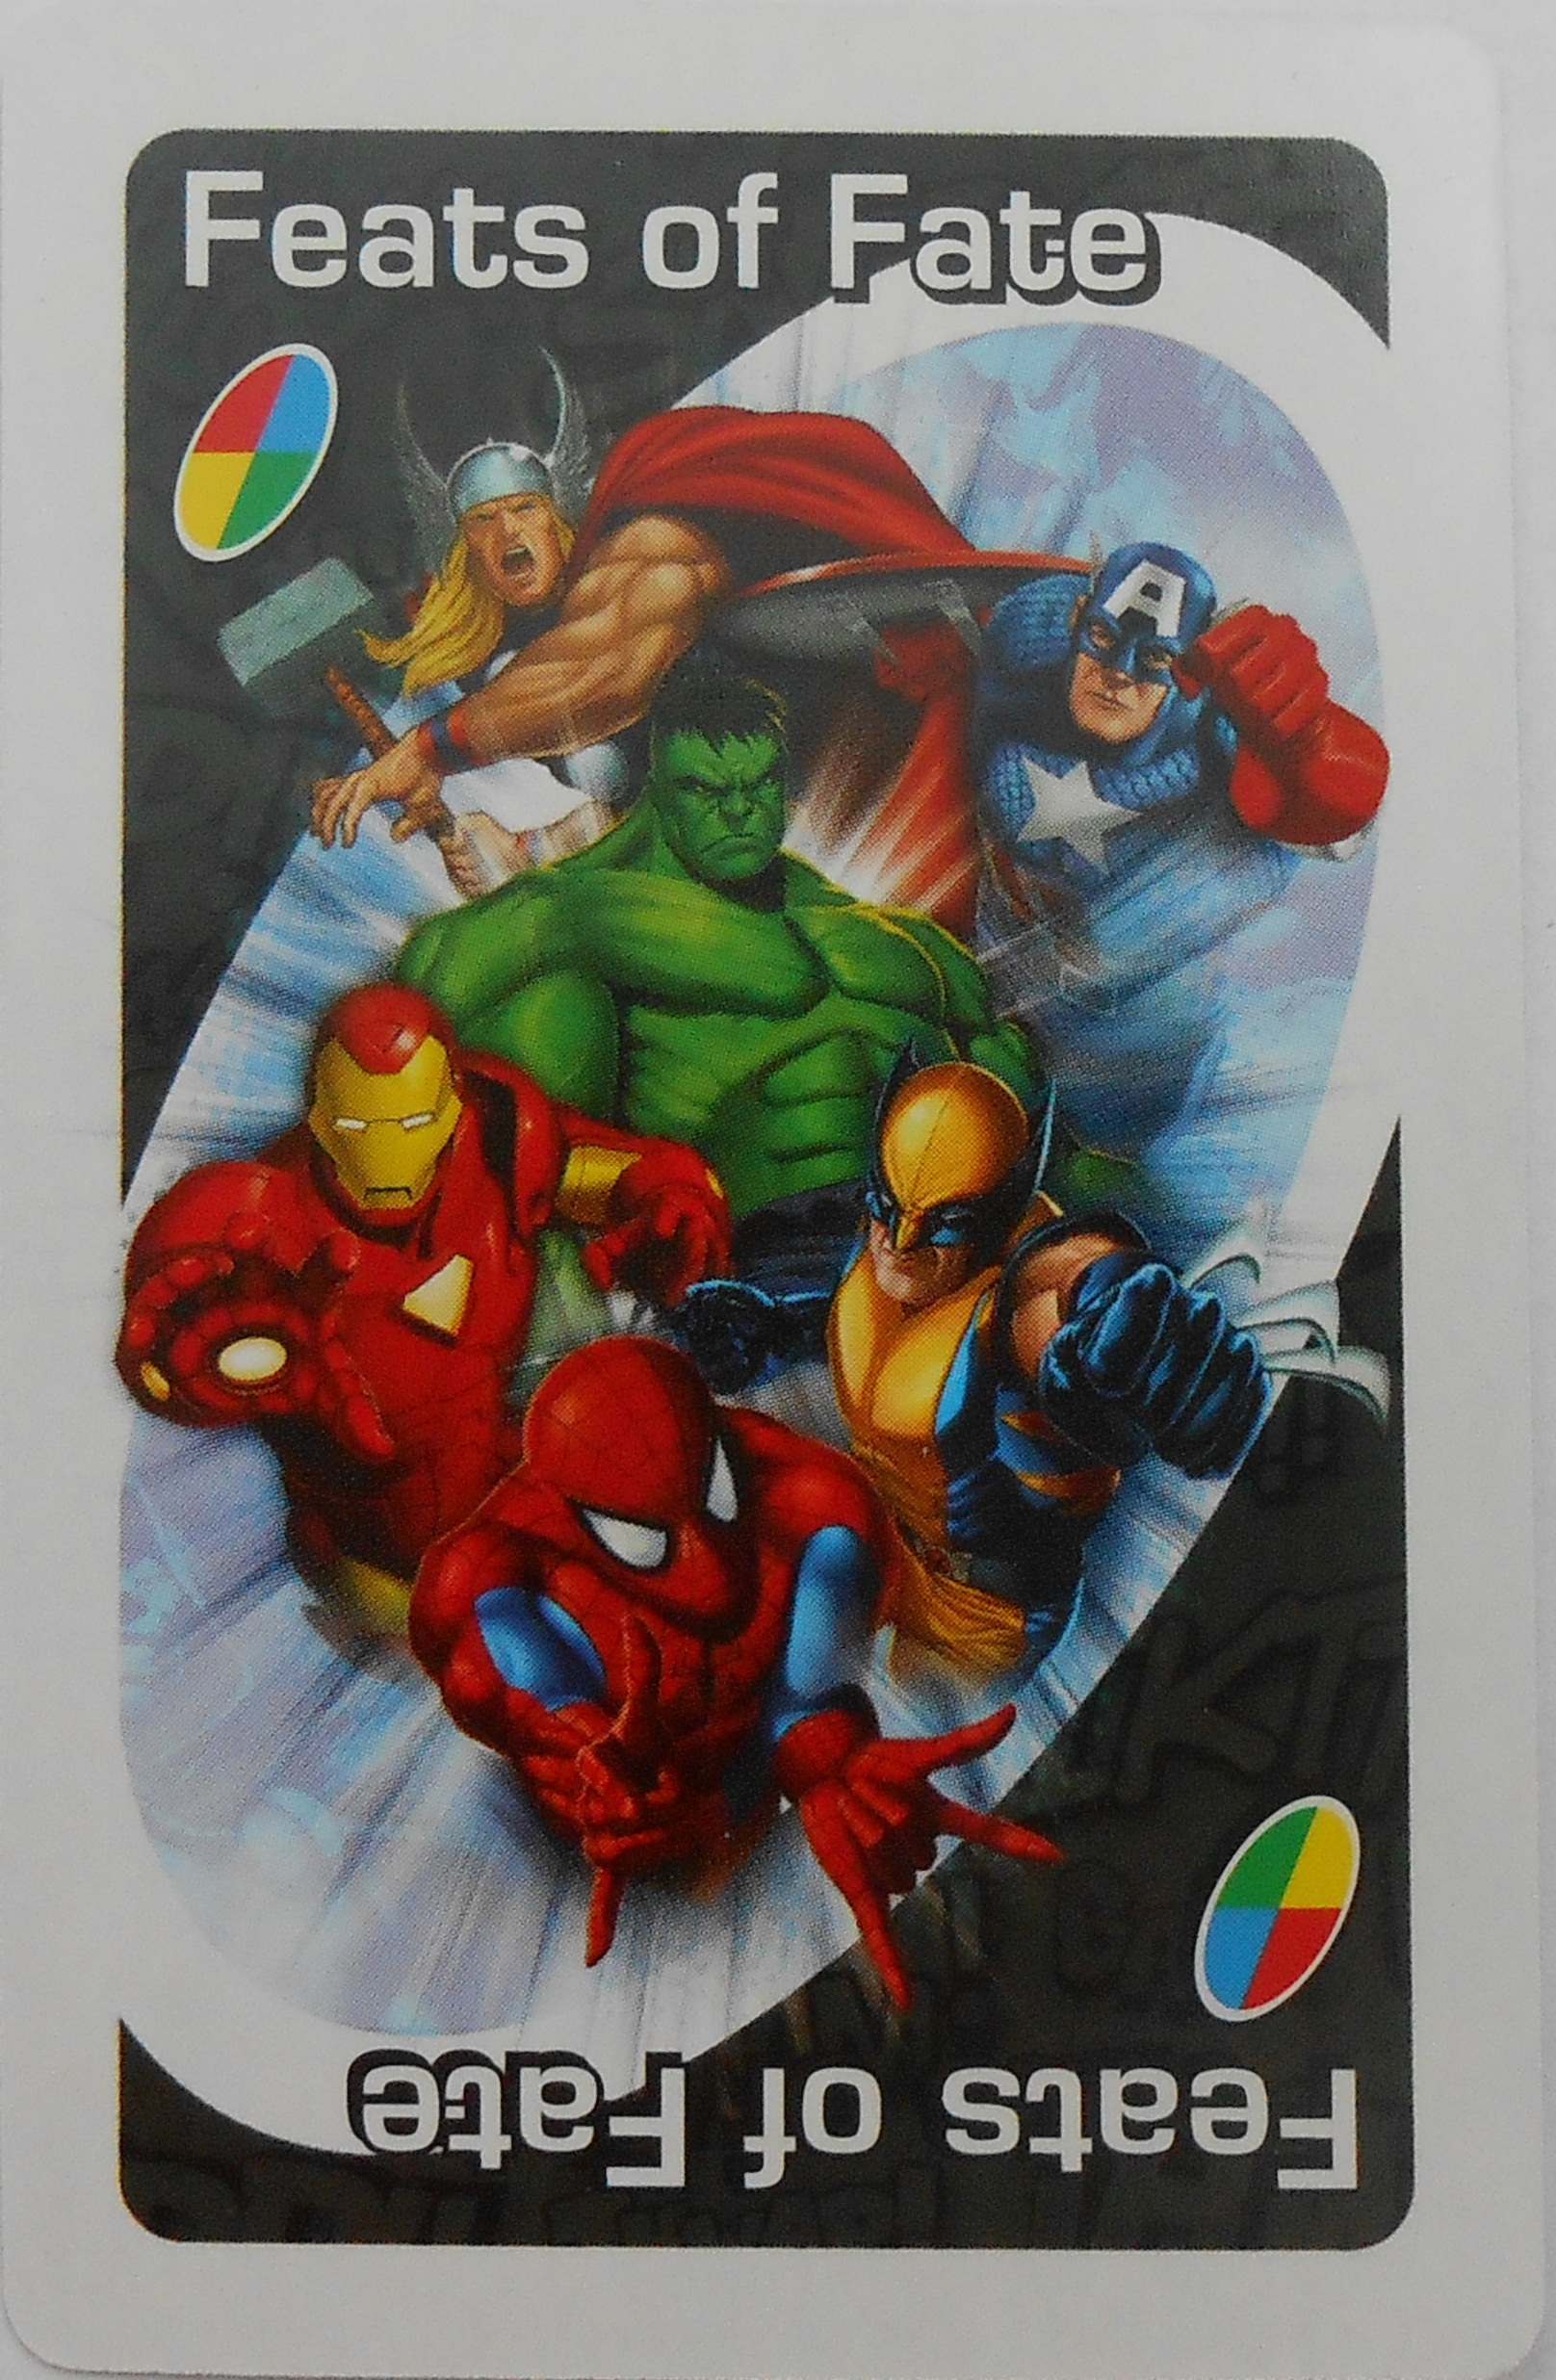 Marvel Heroes Uno (Feats of Fate Card)